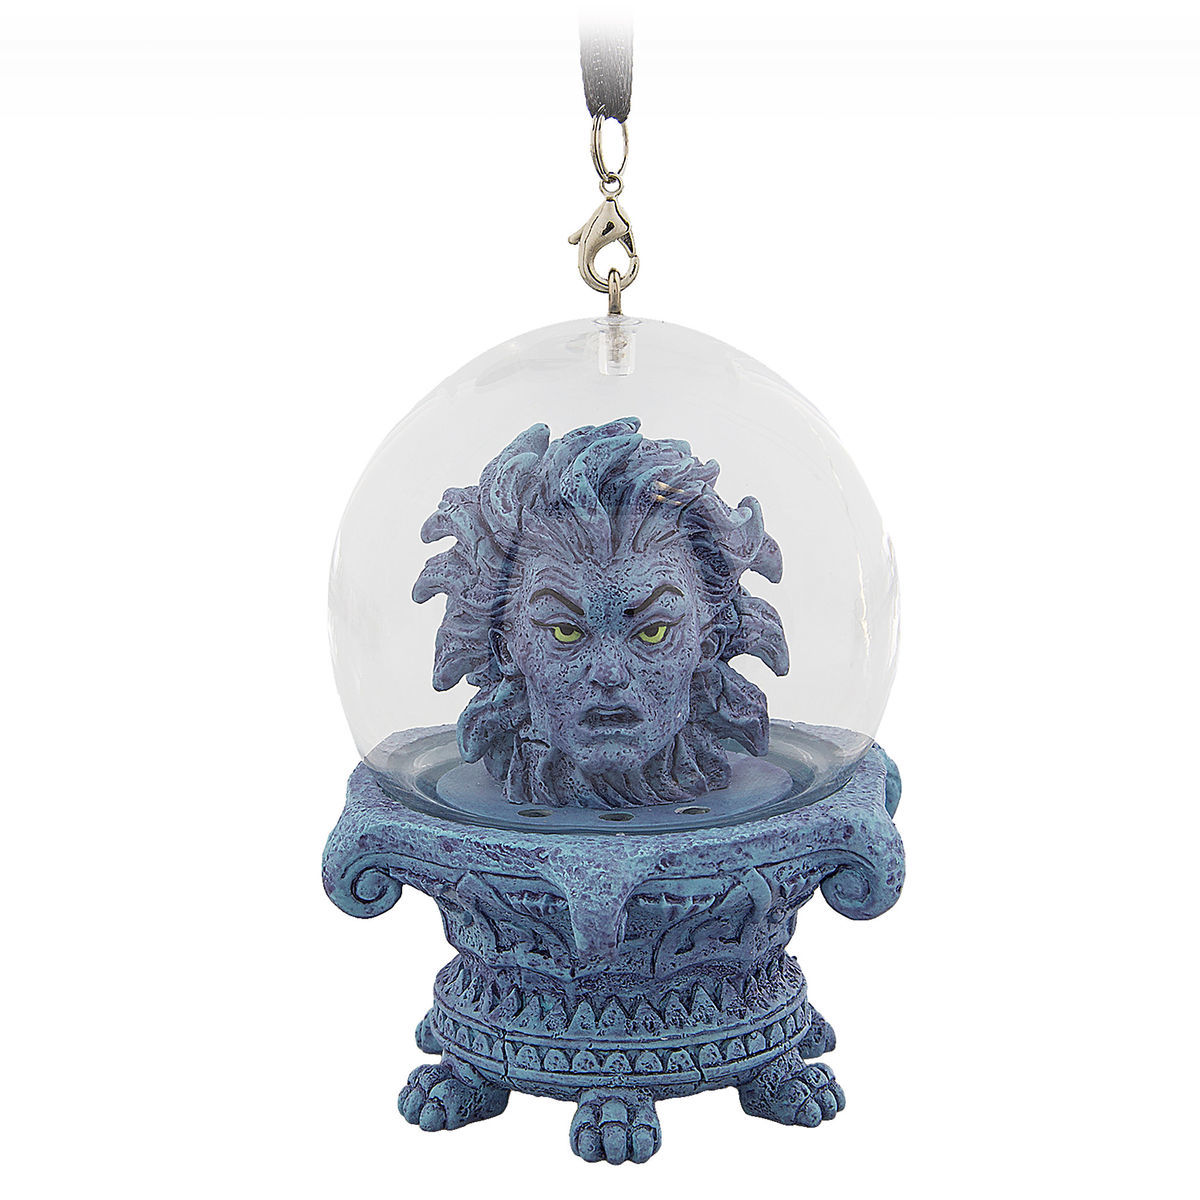 Madame Leota Light-Up Ornament - The Haunted Mansion